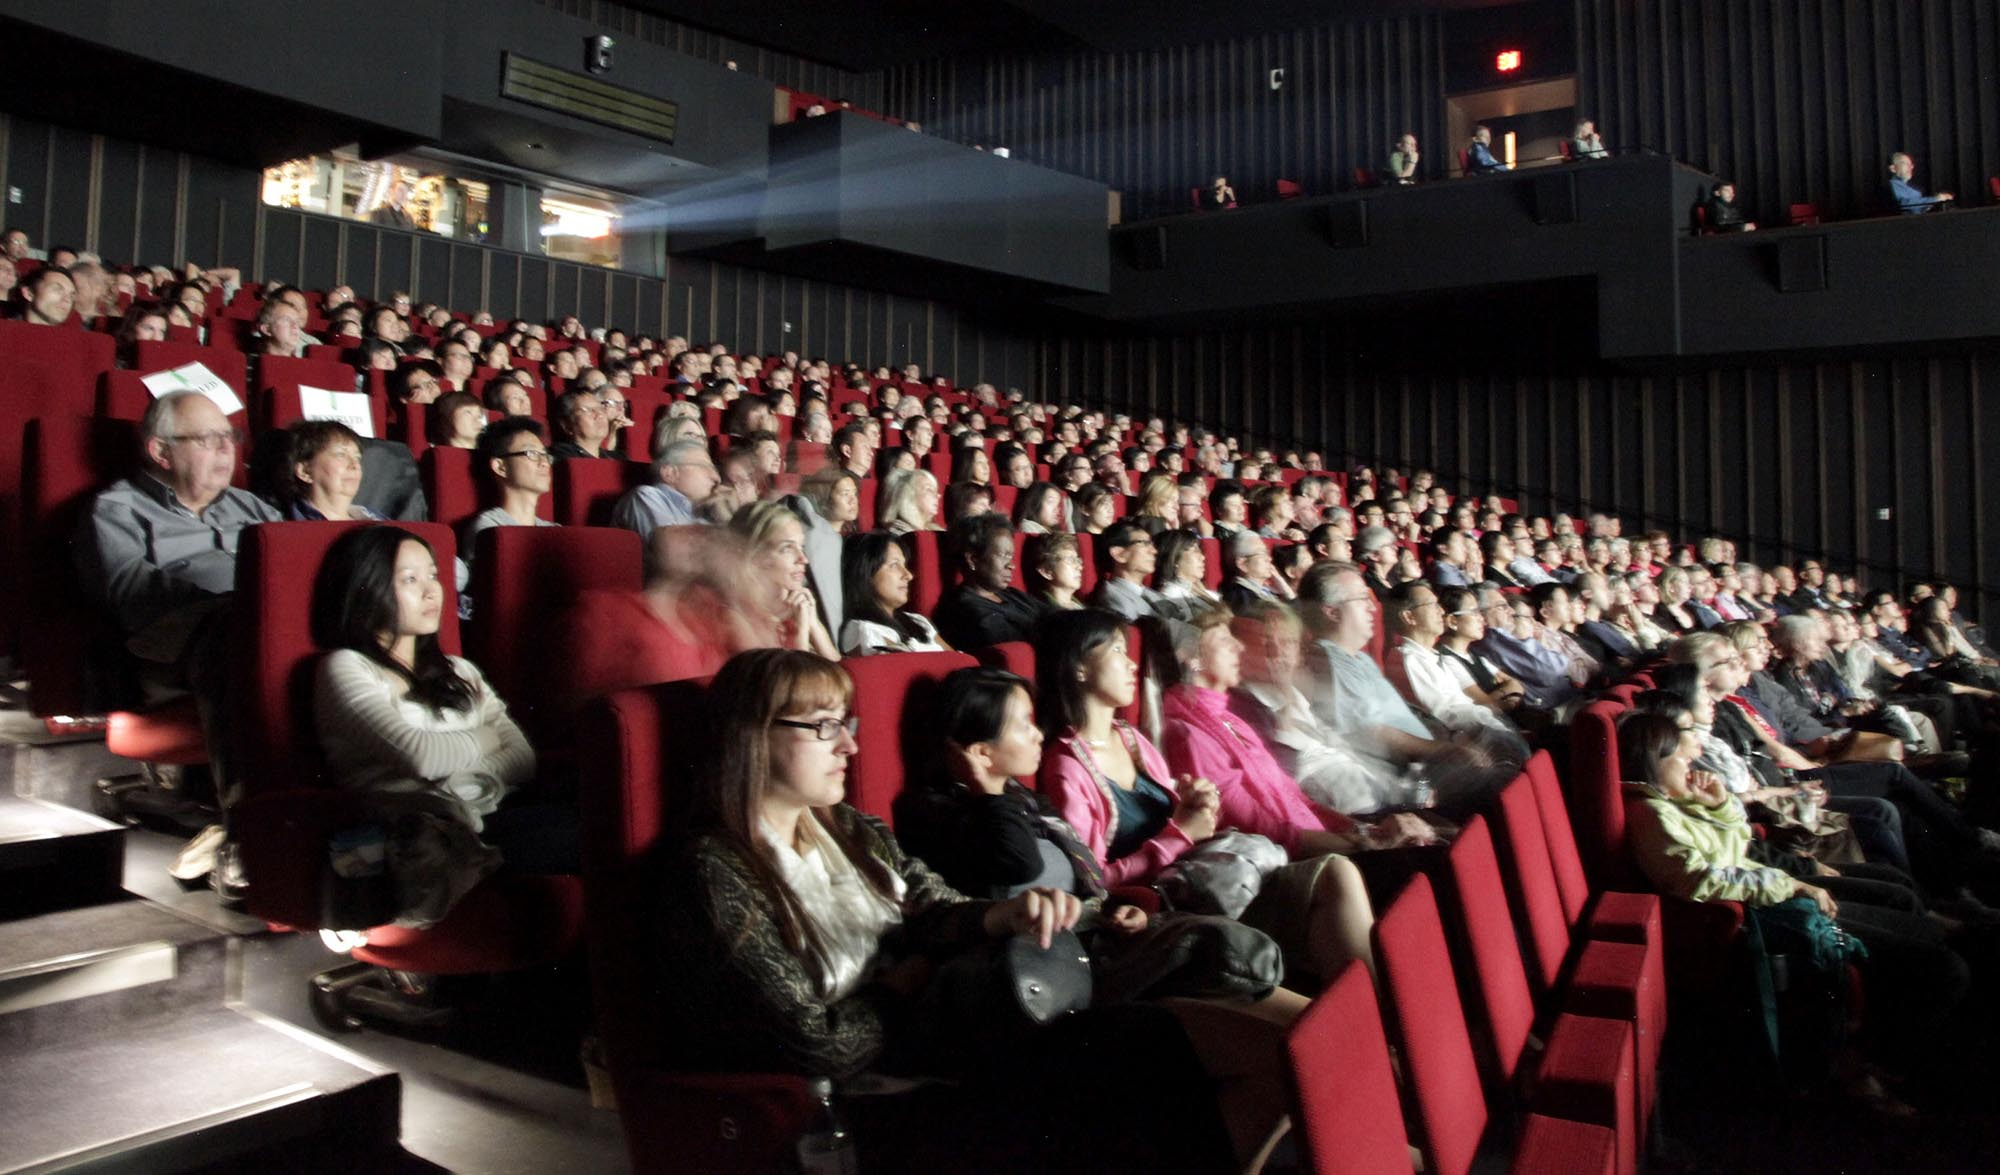 While cinema sales may be dwindling, film festivals are thriving. Let's explore the rise of film festivals: the cool kids' club where everyone's invited.